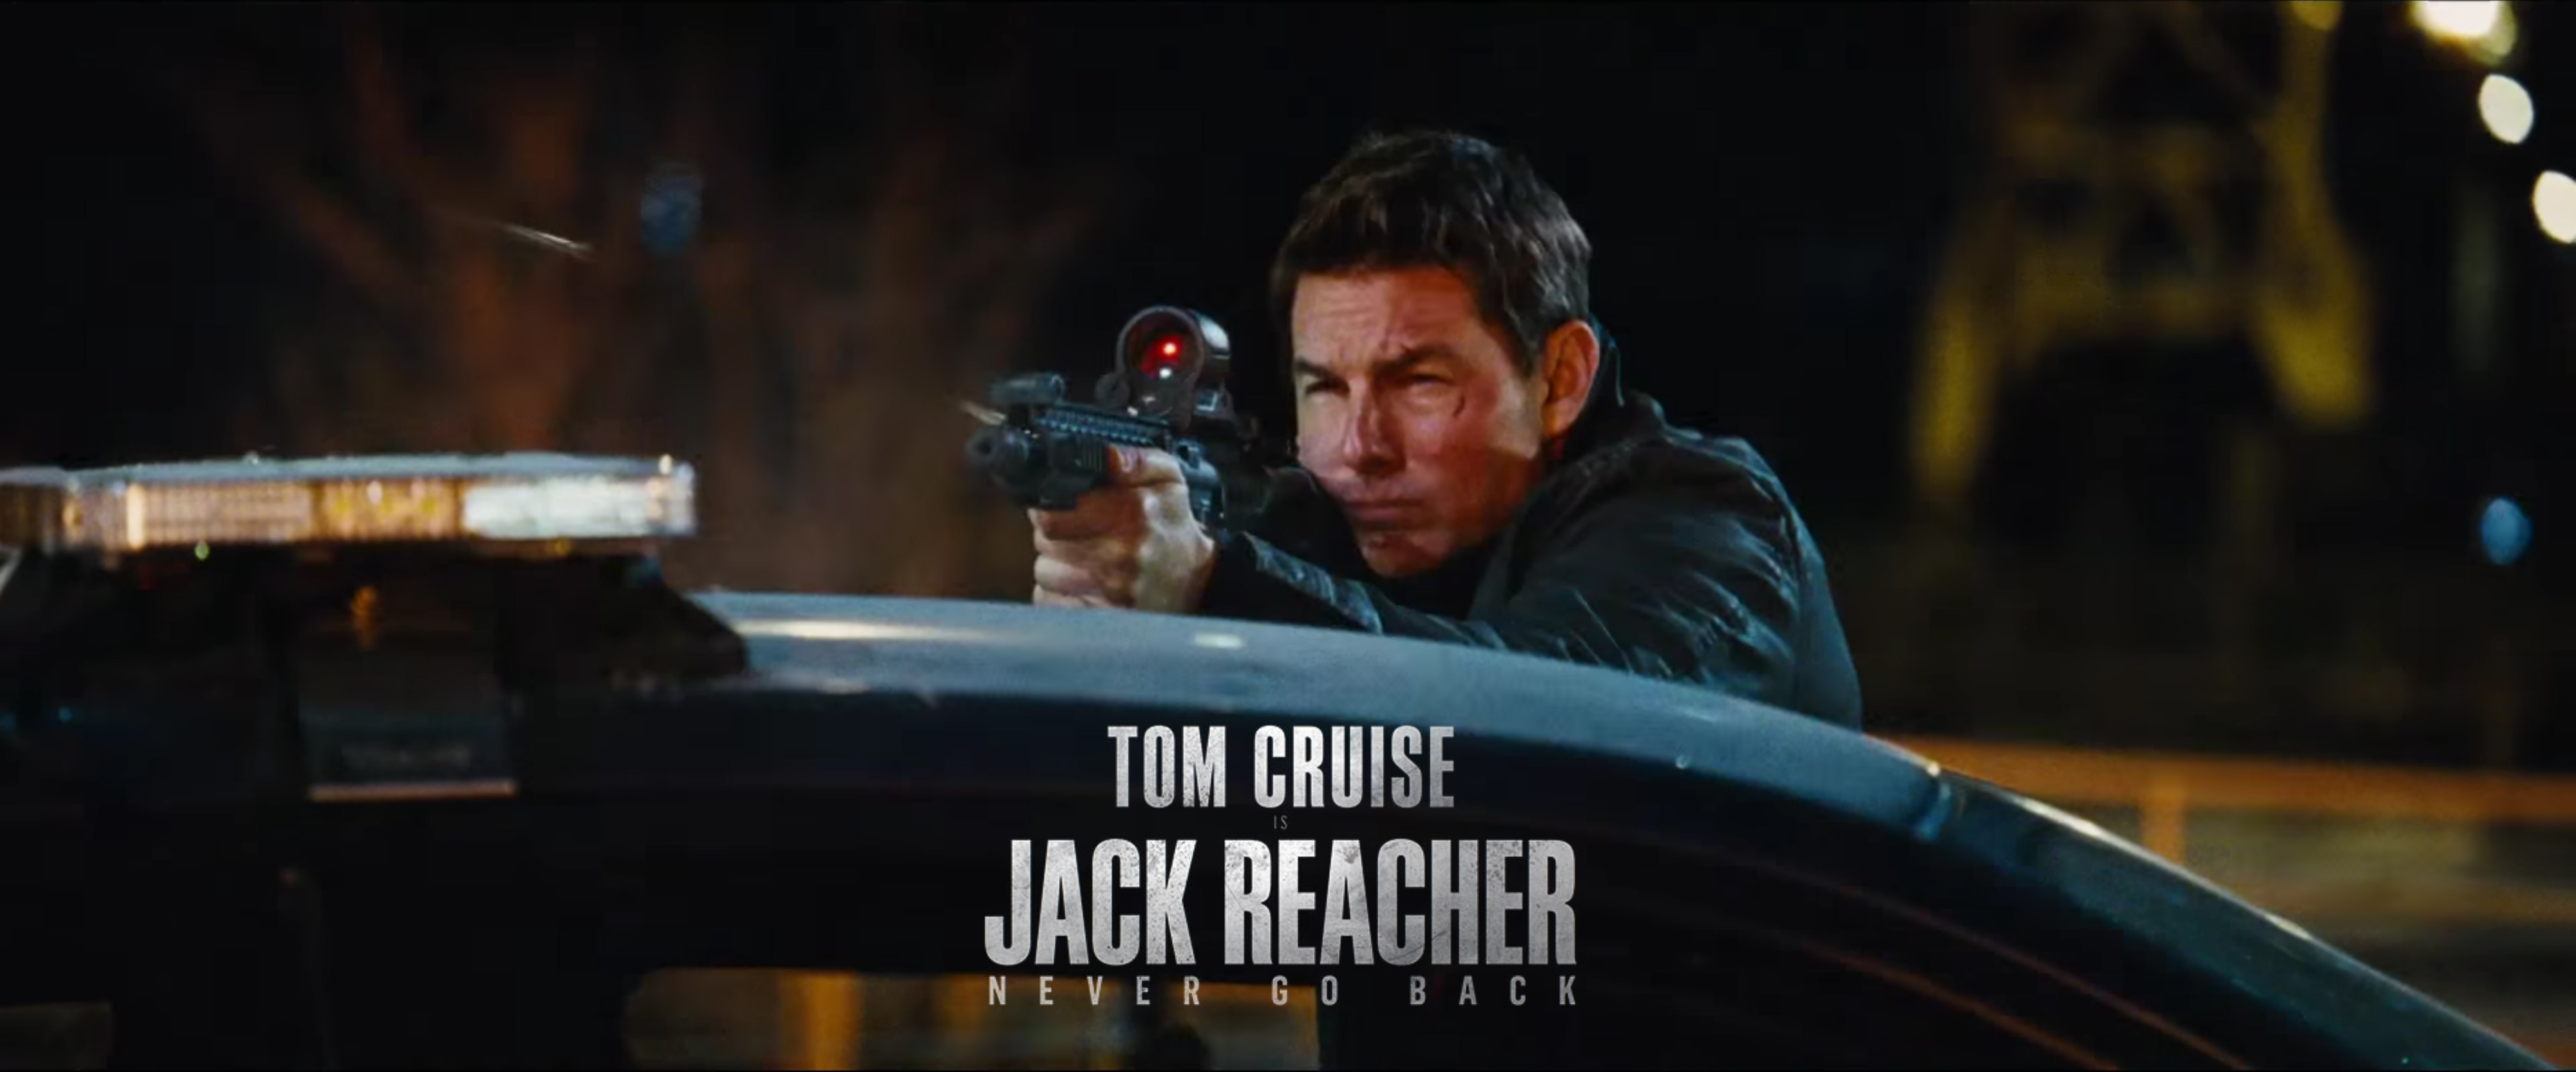 Watch Official Trailer Jack Reacher 2 Never Go Back Tom Cruise, Cobie Smulders Edward Zwick Paramount Pictures